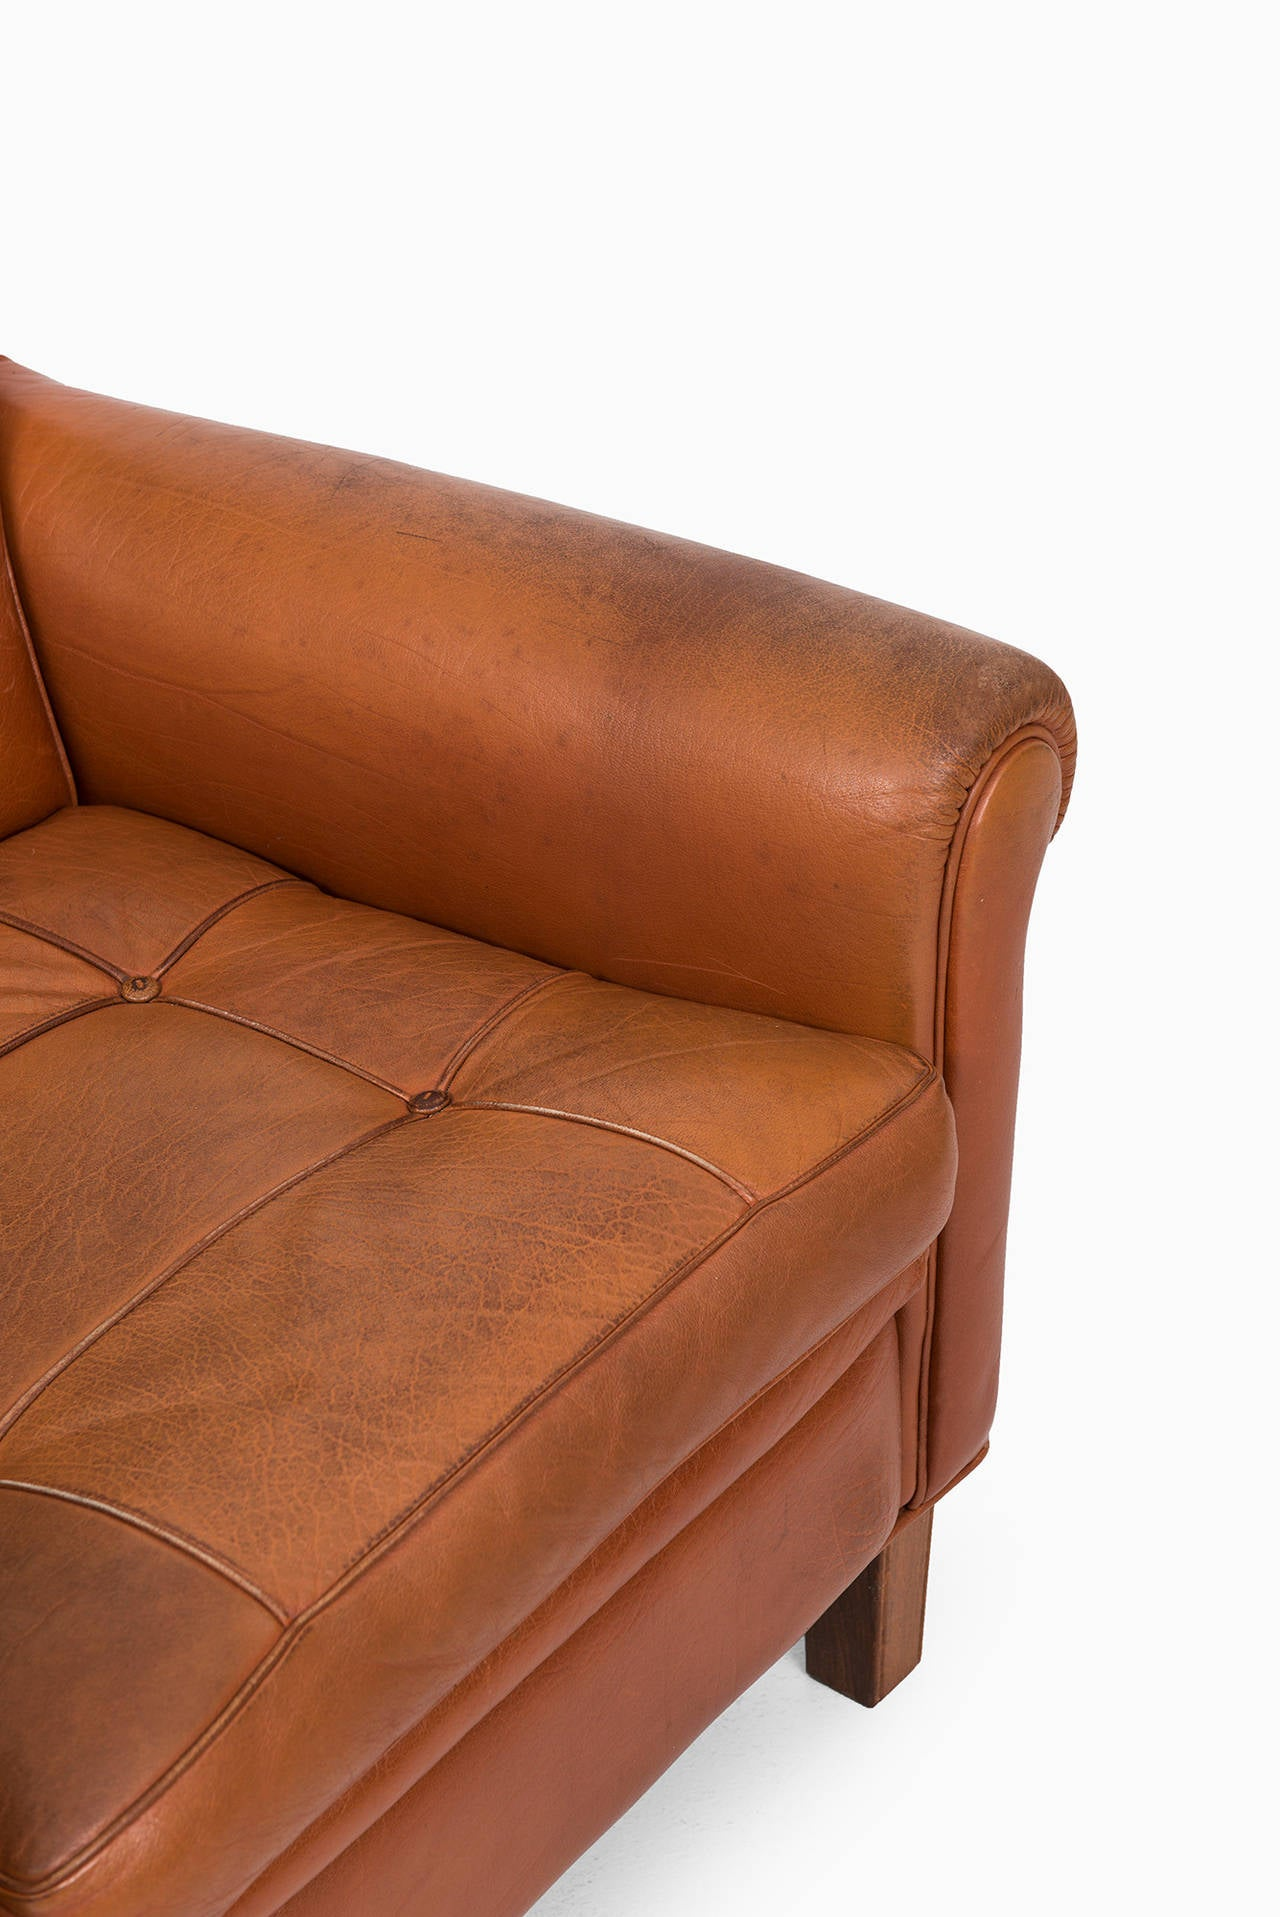 buffalo leather chair timber ridge zero gravity patio lounge oversize xl arne norell easy chairs in brown for sale